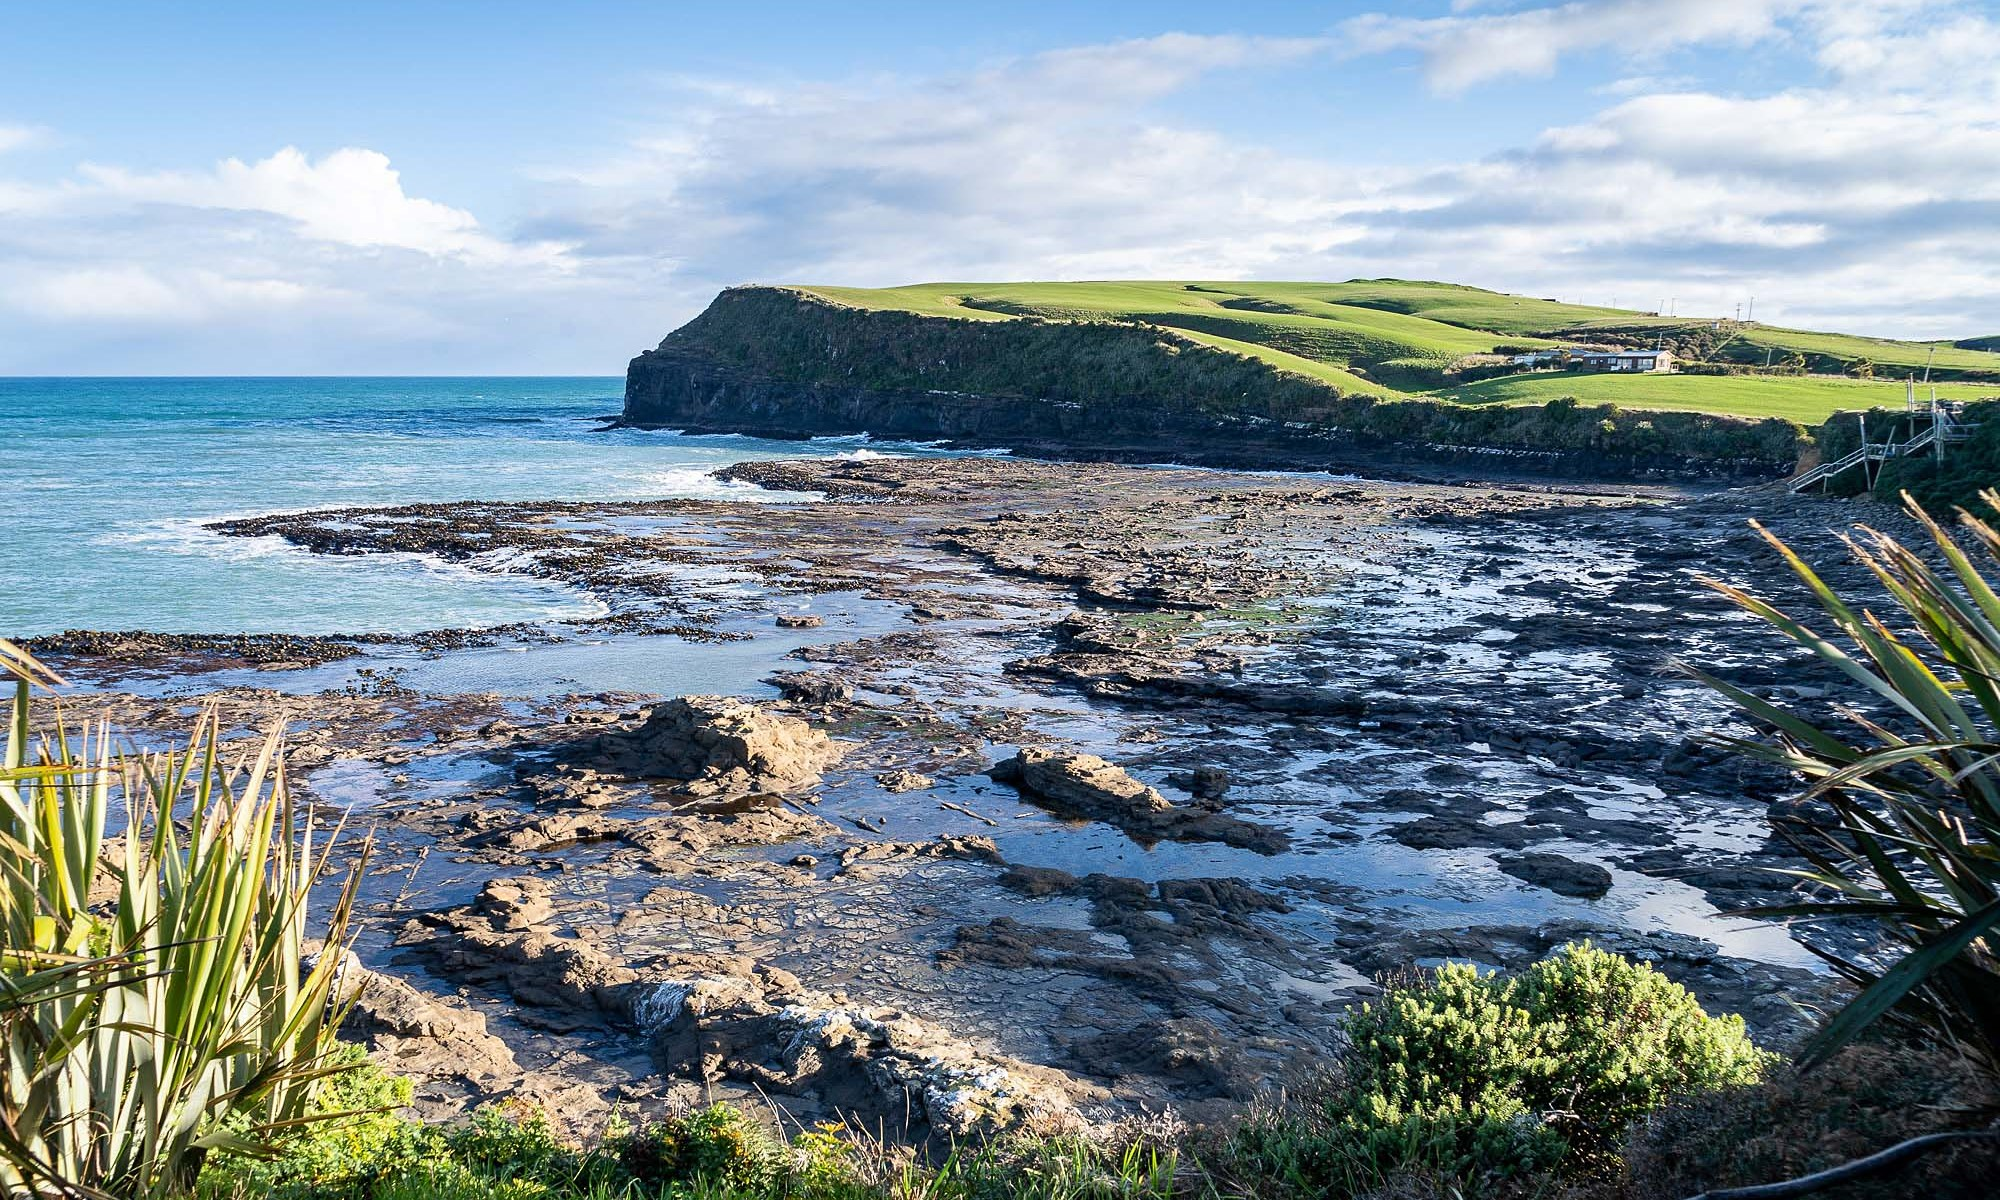 Curio Bay, Catlins